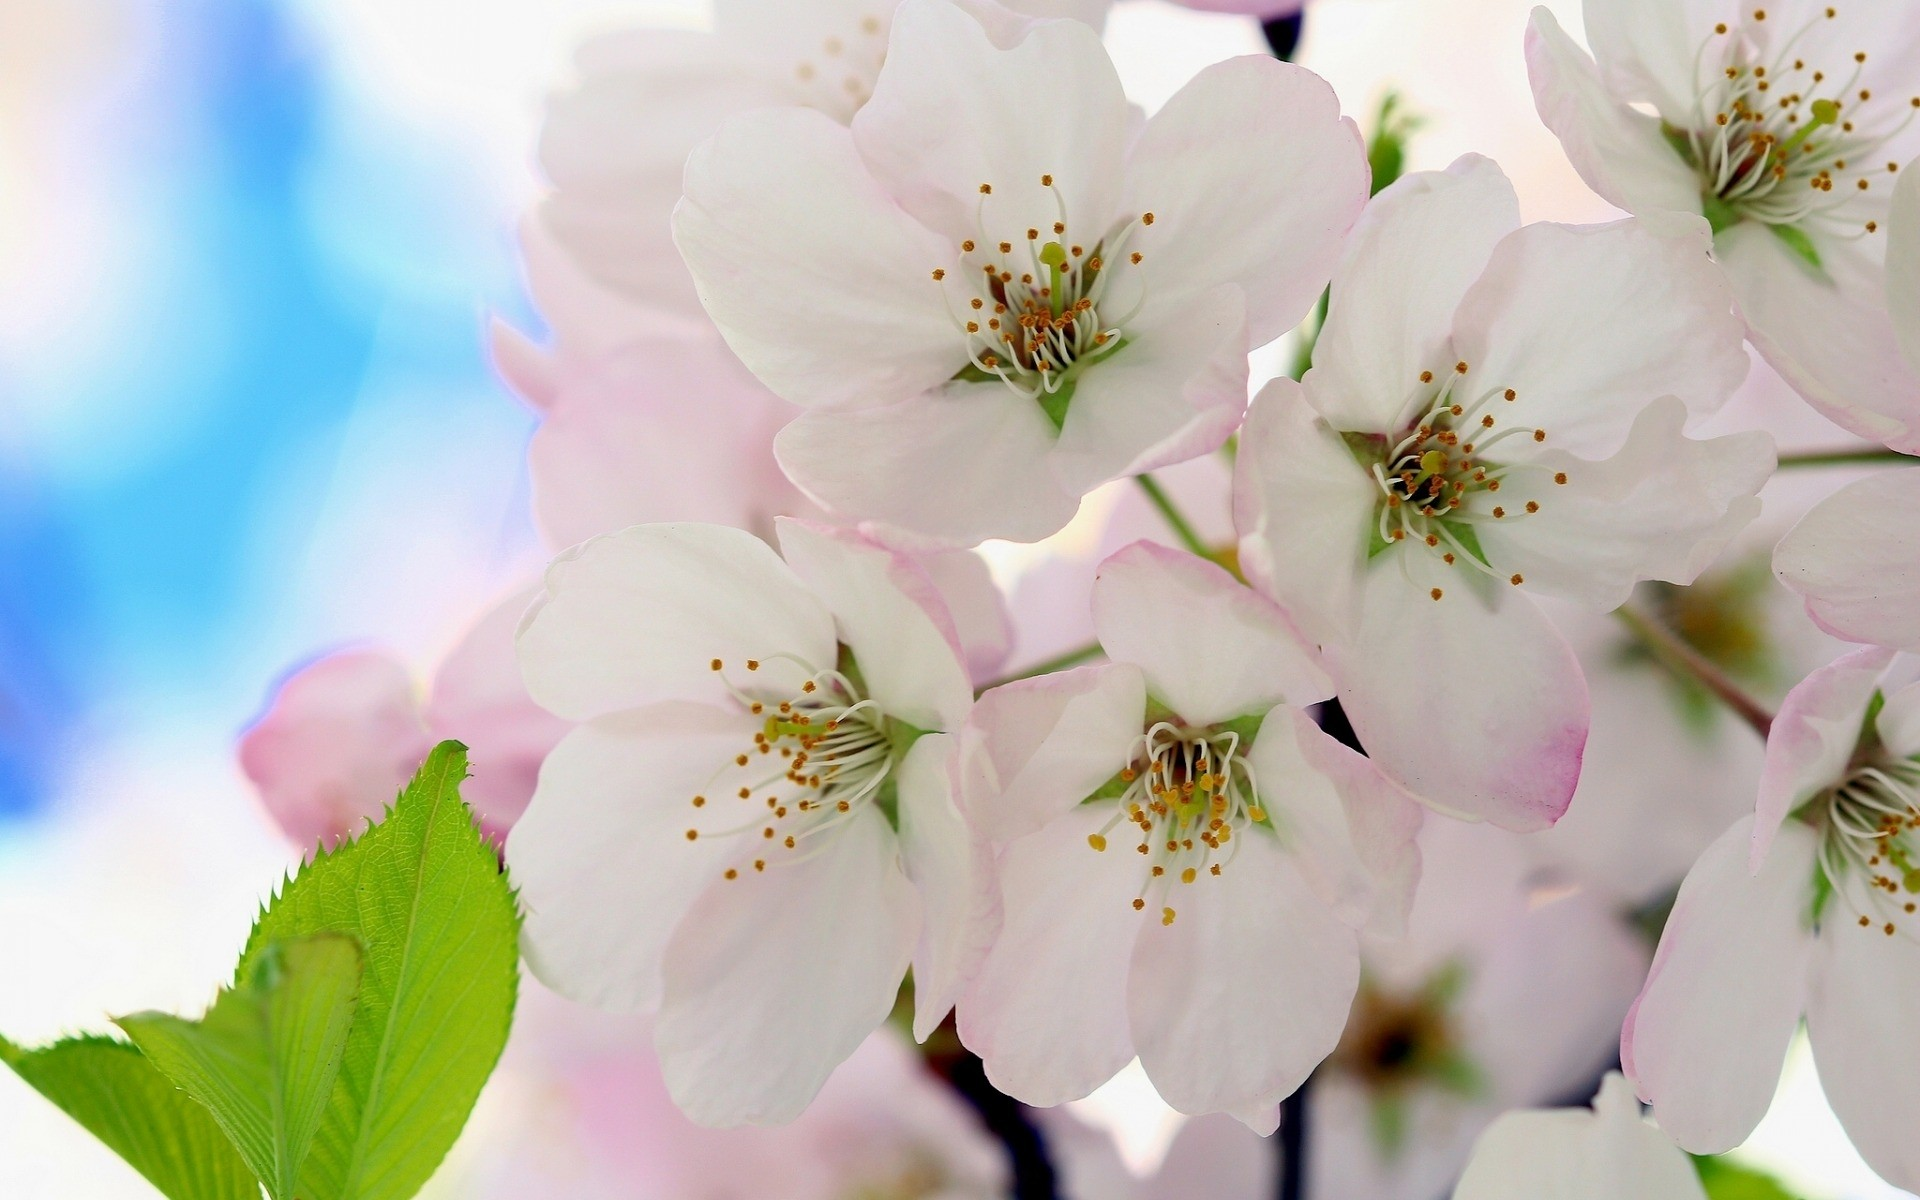 Flowers: Cherry Blooming Flowers Branch White Leaves Image for HD 16 ...